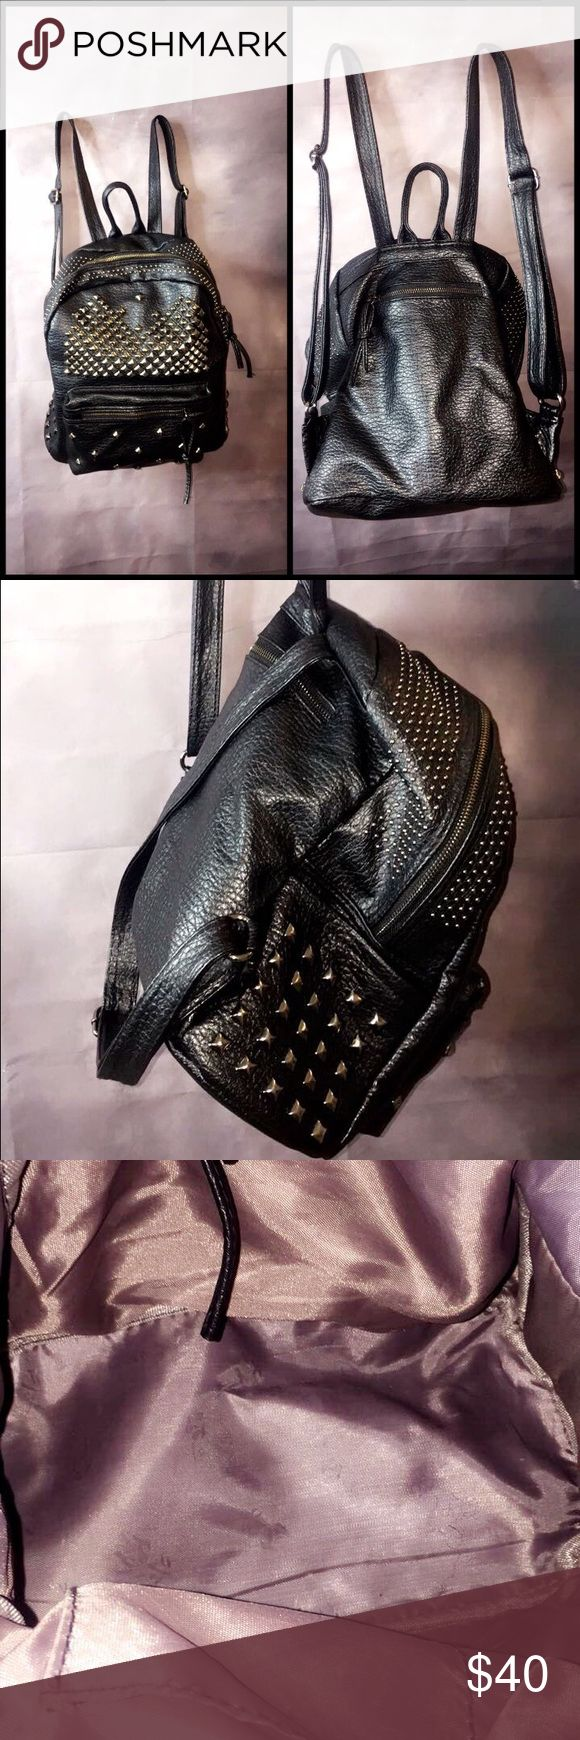 Black leather studded backpack Great quality very sturdy and spacious backpack great for school, travel or as purse. Medium sized. Compartments on both sides and zipper in the back back Bags Backpacks